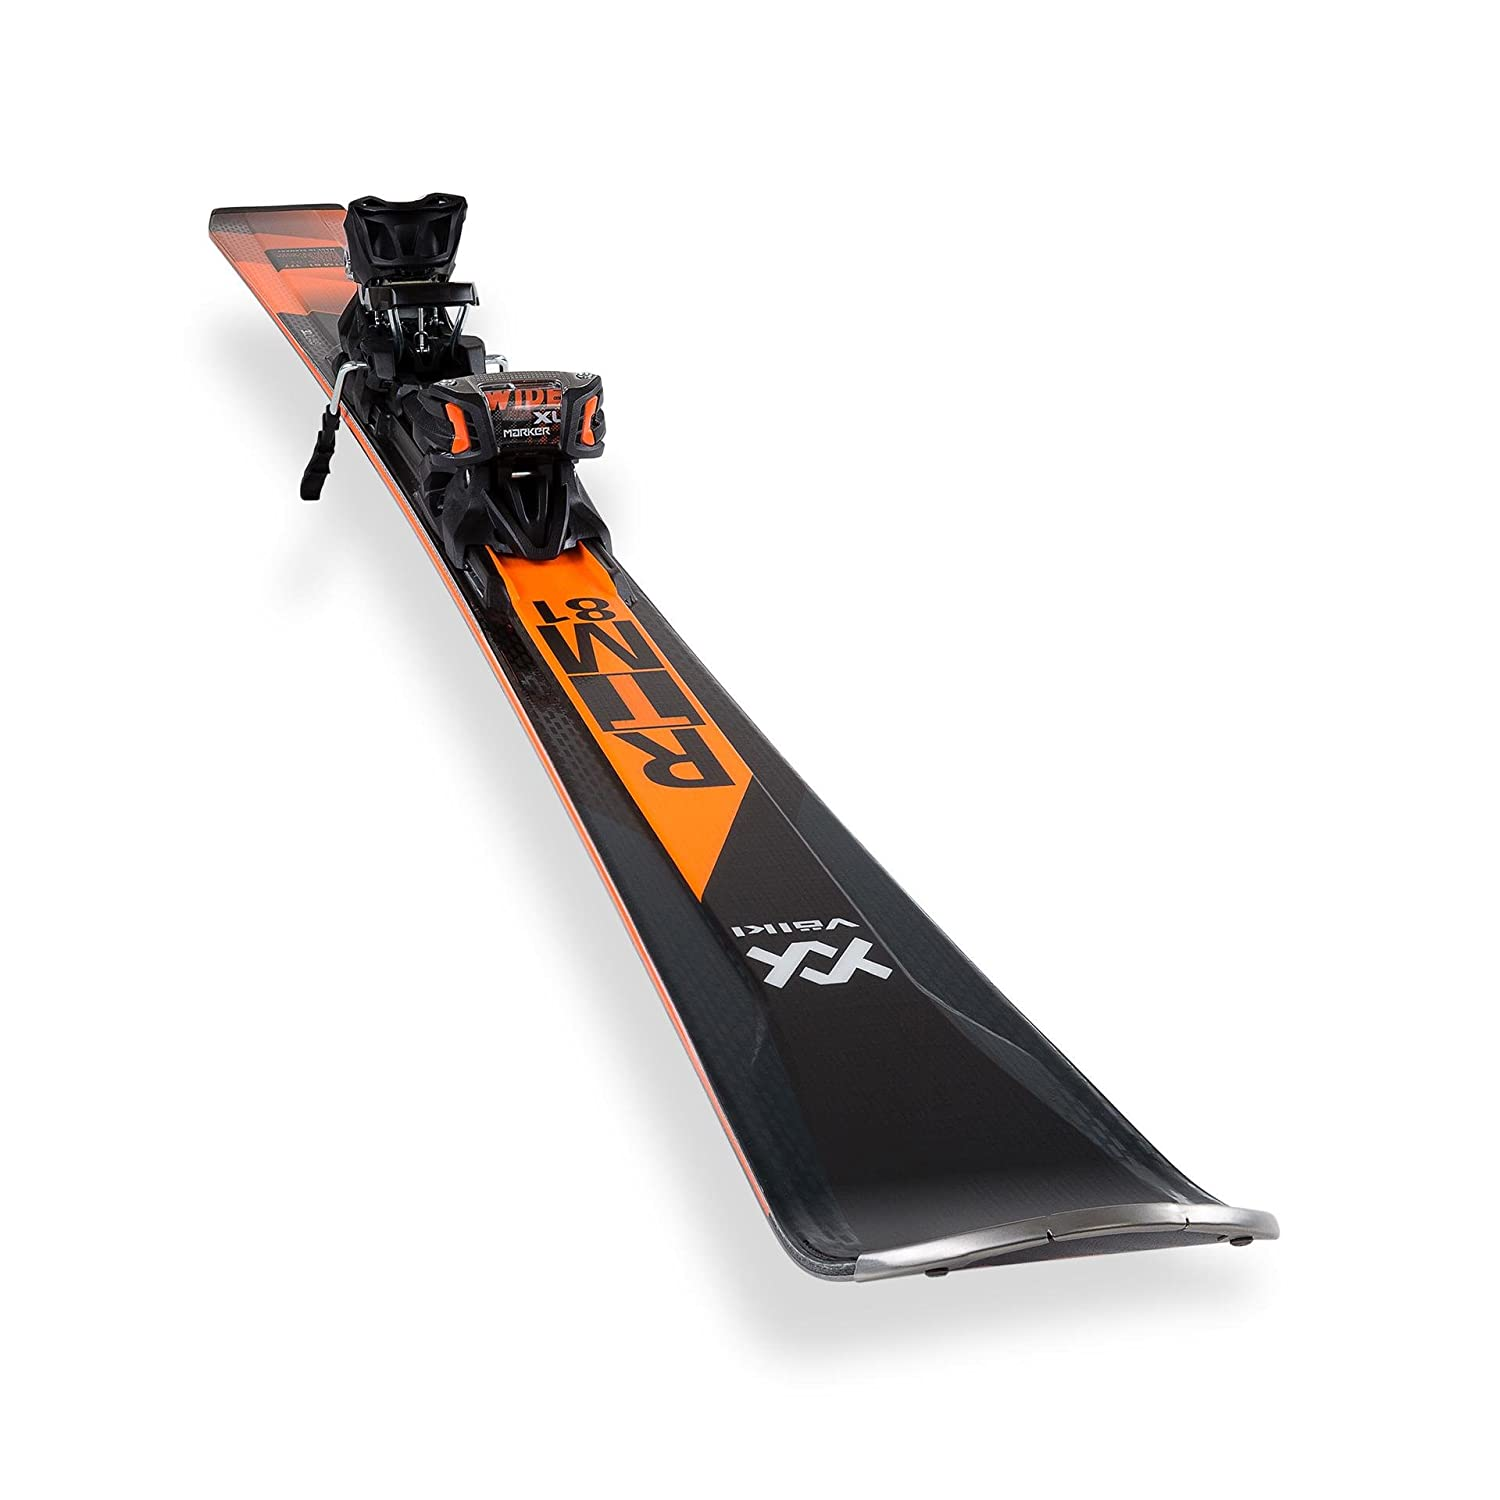 Volkl 2018 RTM 81 Skis with iPT WR XL 12.0 TCX Bindings